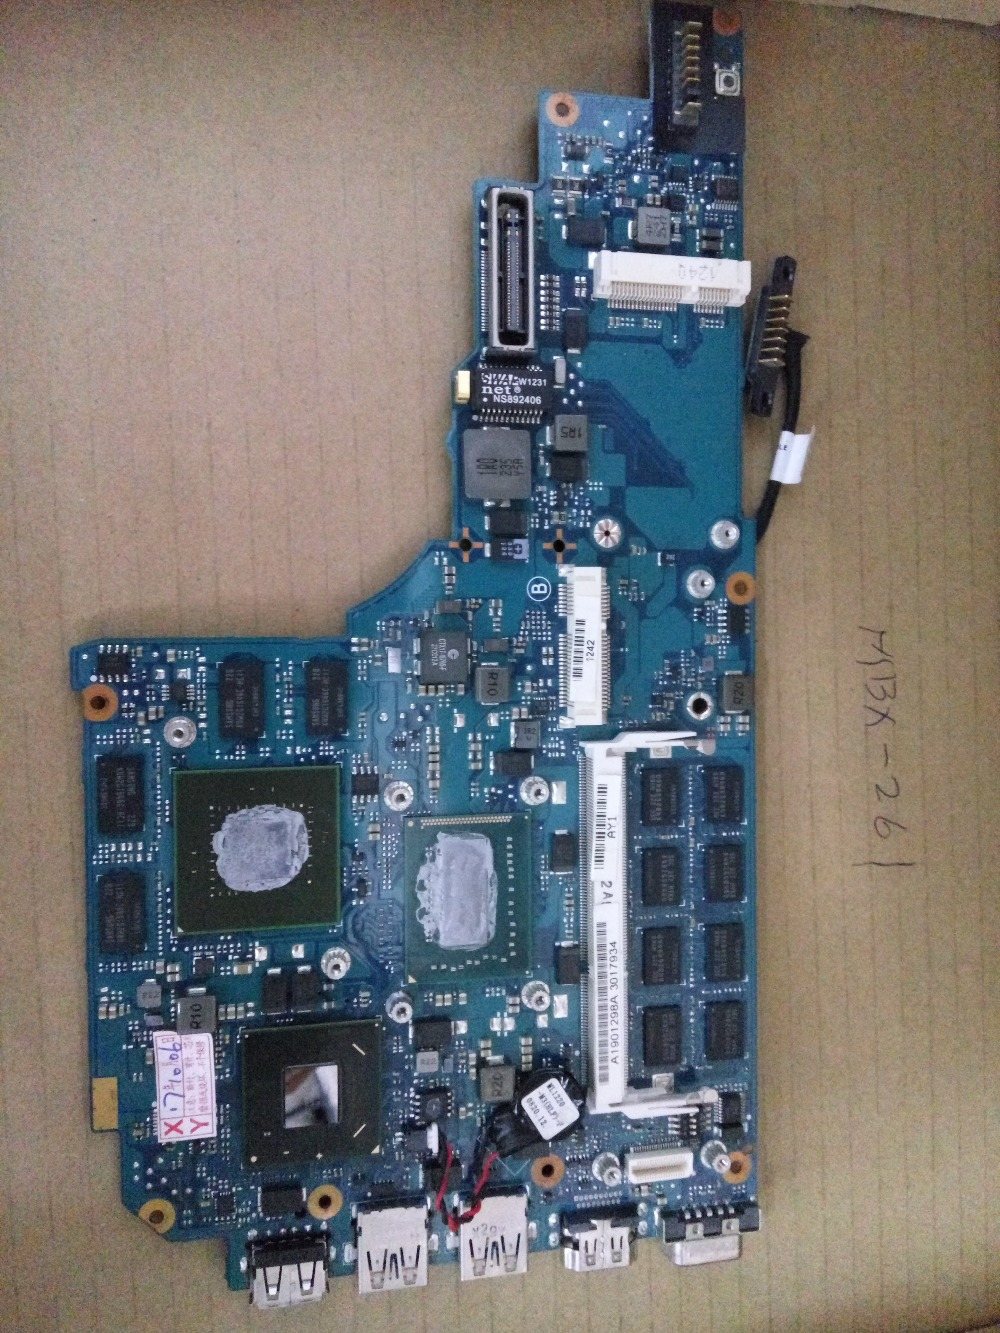 MBX-261 I3 I5 I7 lap connect with motherboard connect board A1901298A MBX-261 1P-0128205-A011